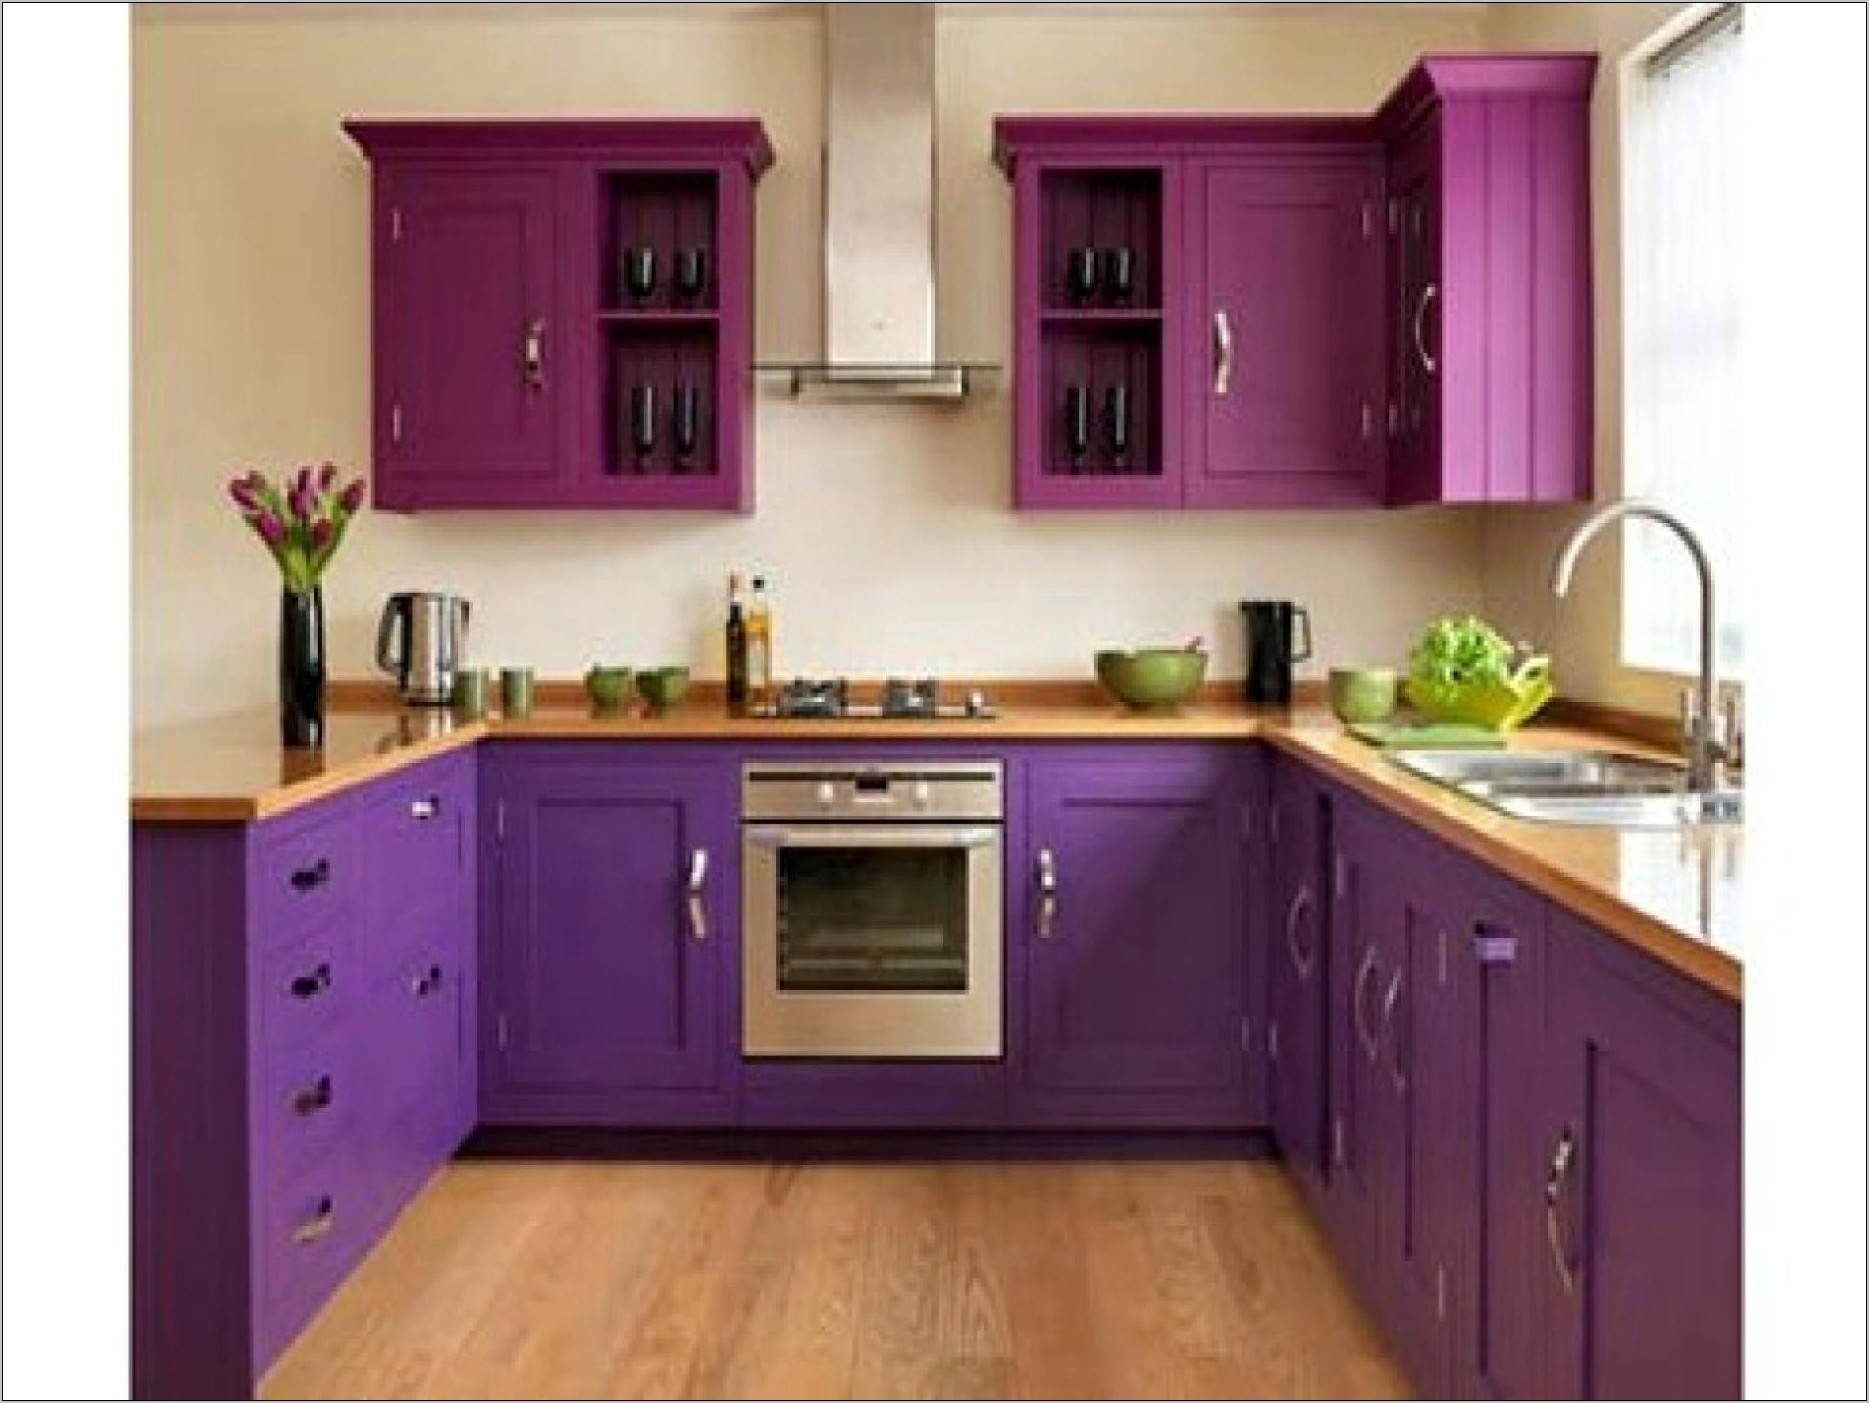 Home Decor Kitchen Designs